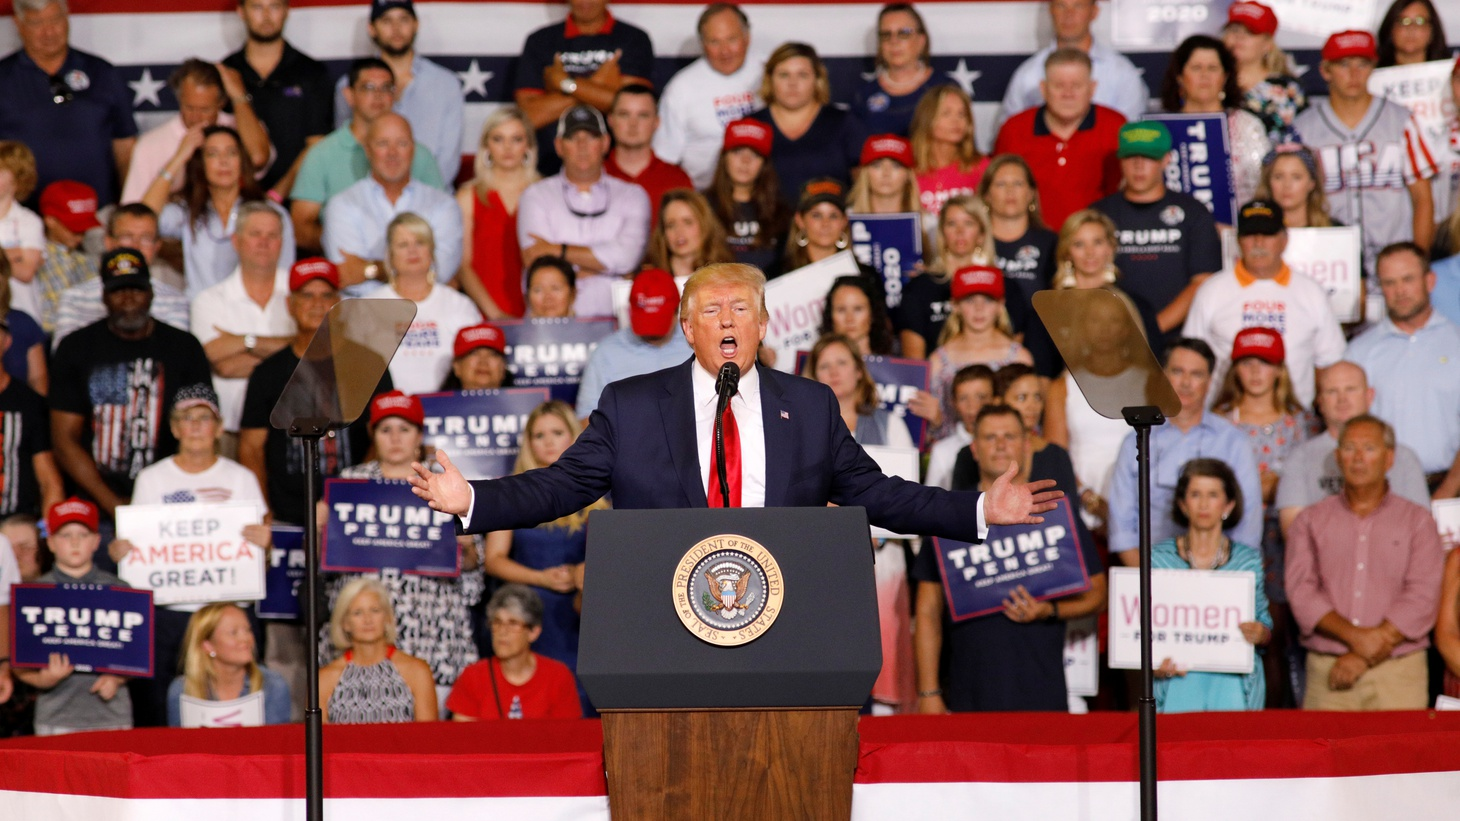 """U.S. President Donald Trump speaks about U.S. Representative Ilhan Omar, and the crowd responded with """"send her back"""", at a campaign rally in Greenville, North Carolina, U.S., July 17, 2019."""